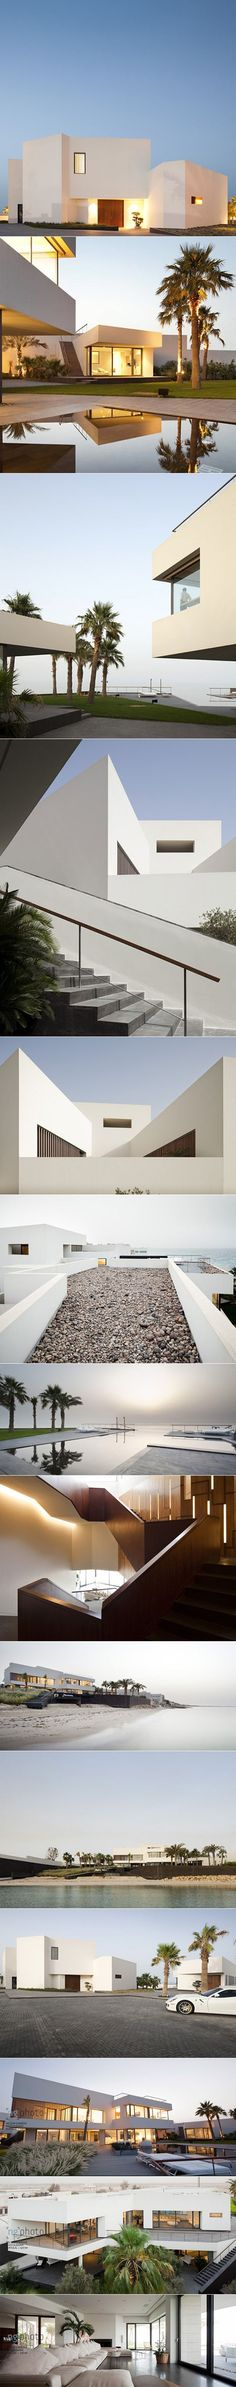 ARCHITECTURE  Star House by AGI Architects - Design Journal